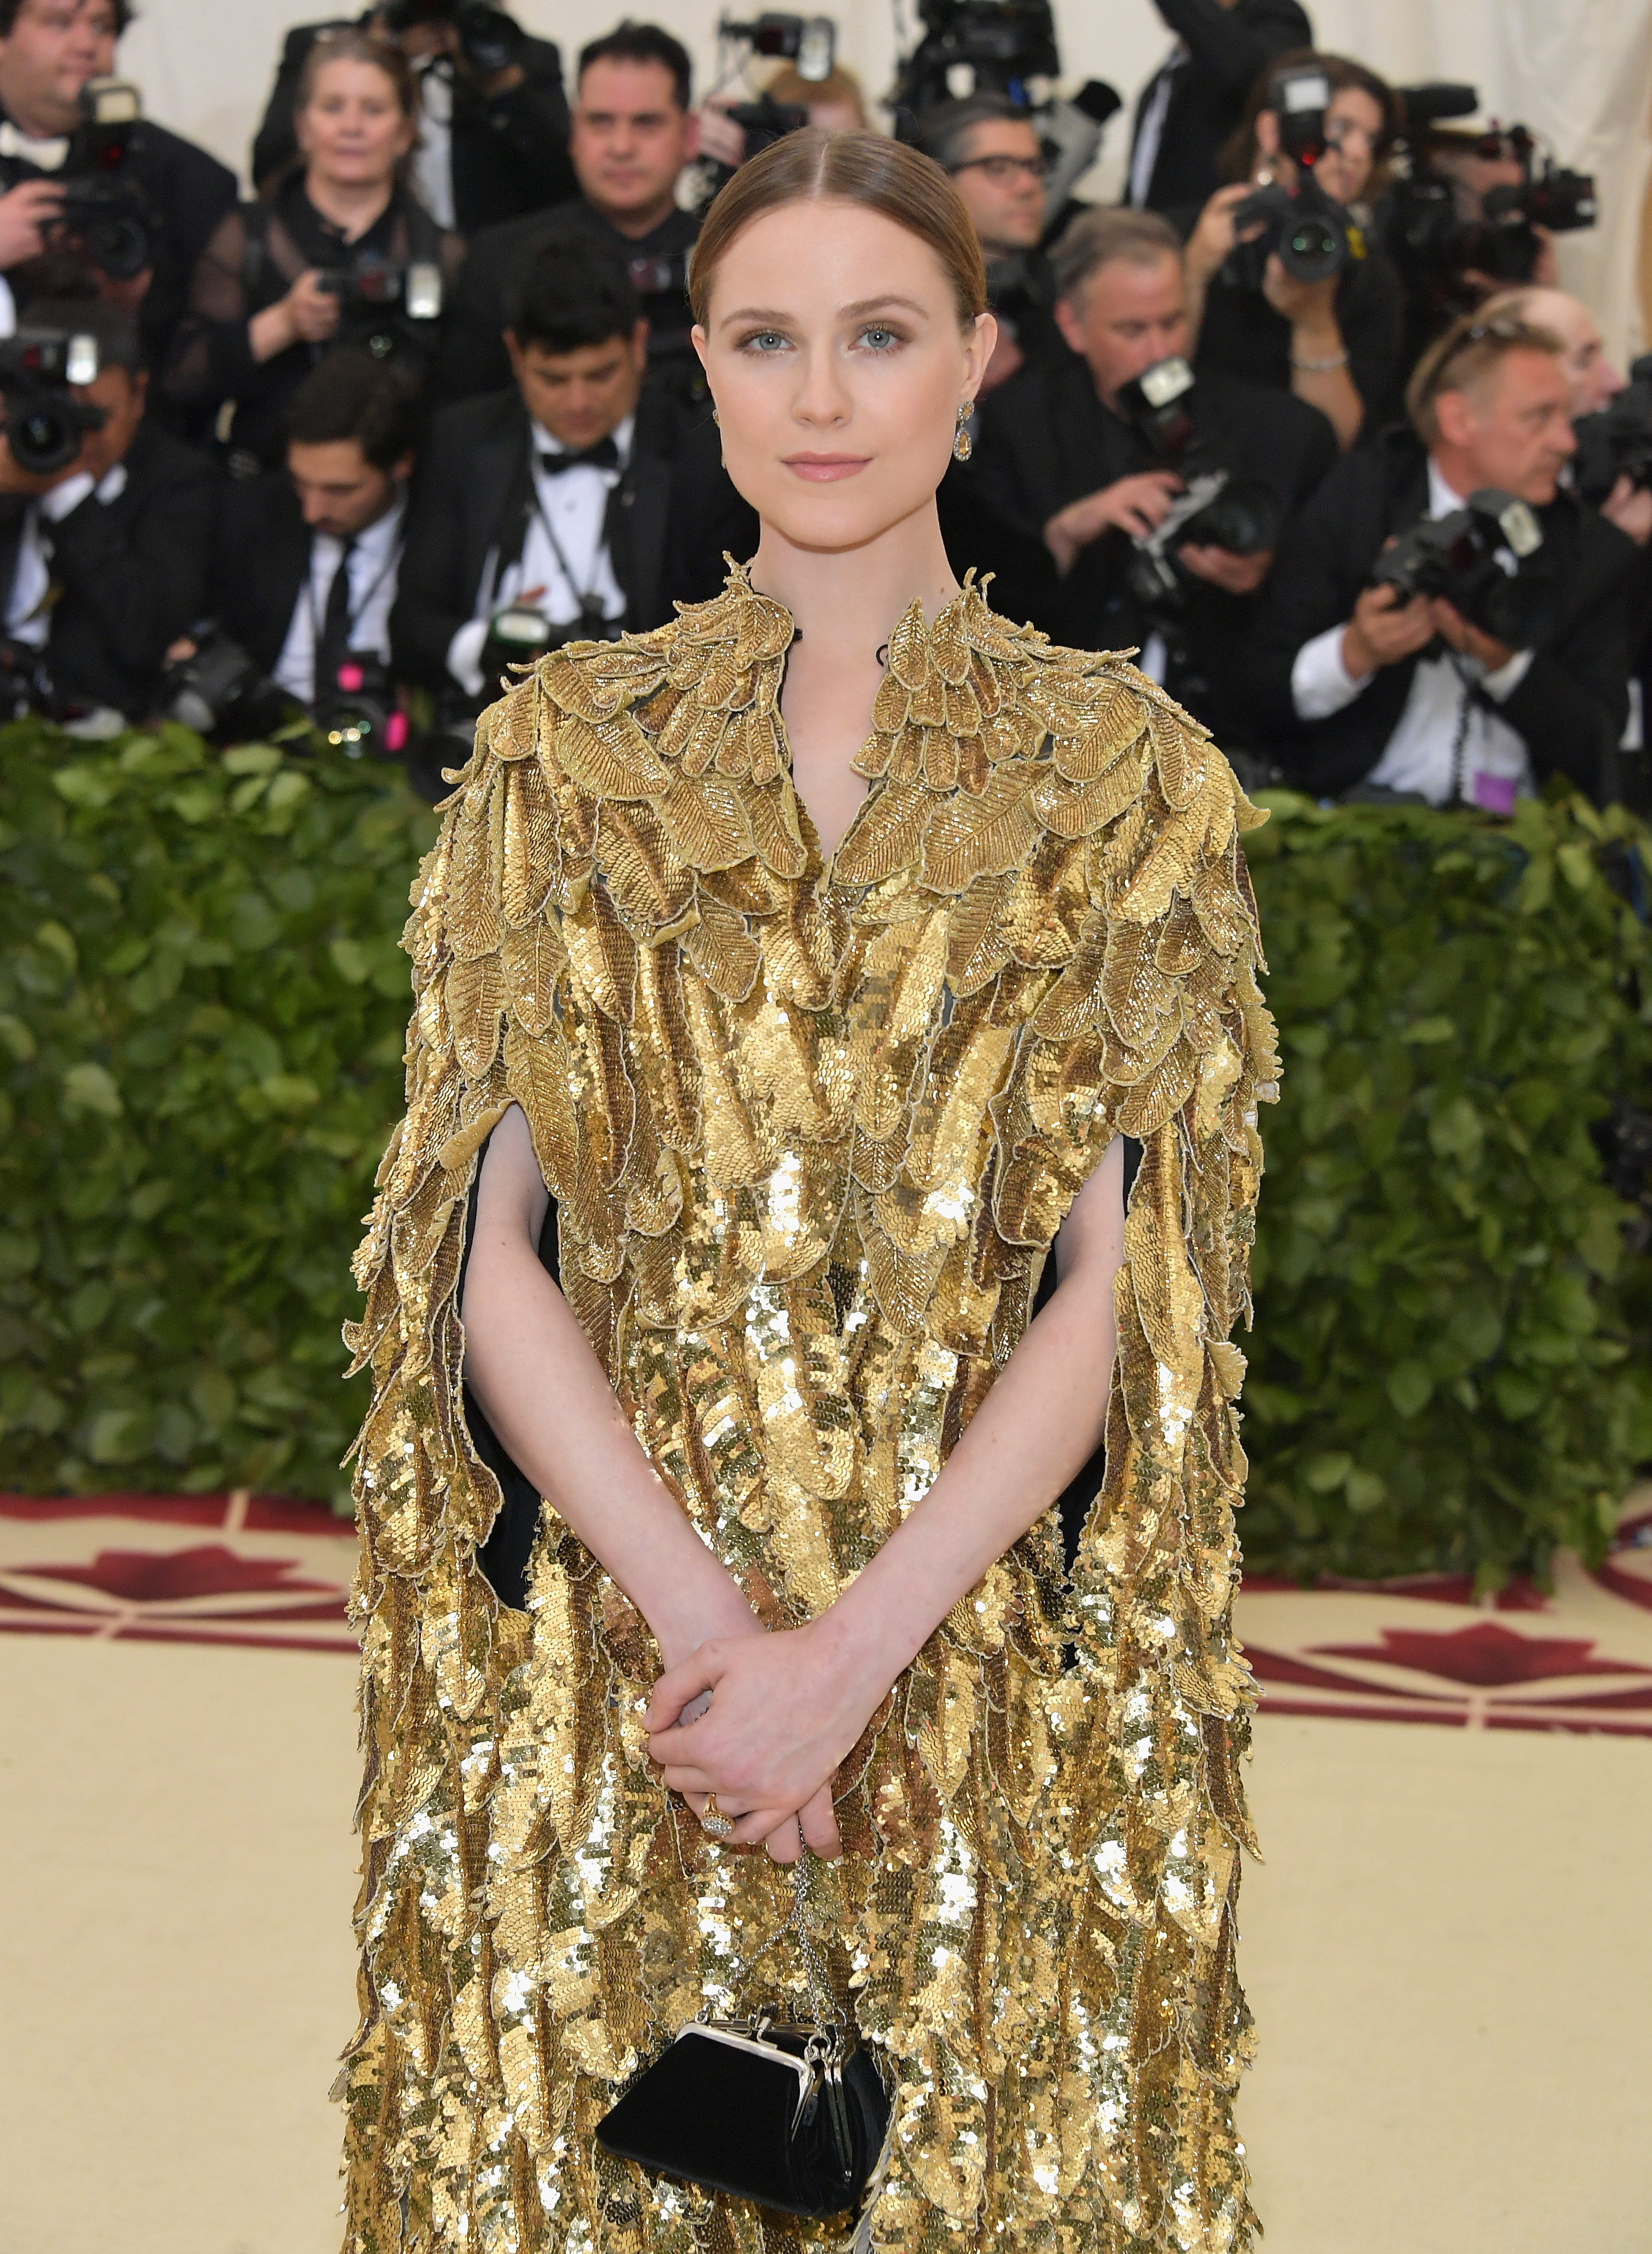 Evan Rachel Wood attends the Heavenly Bodies: Fashion & The Catholic Imagination Costume Institute Gala at The Metropolitan Museum of Art on May 7, 2018 in New York City